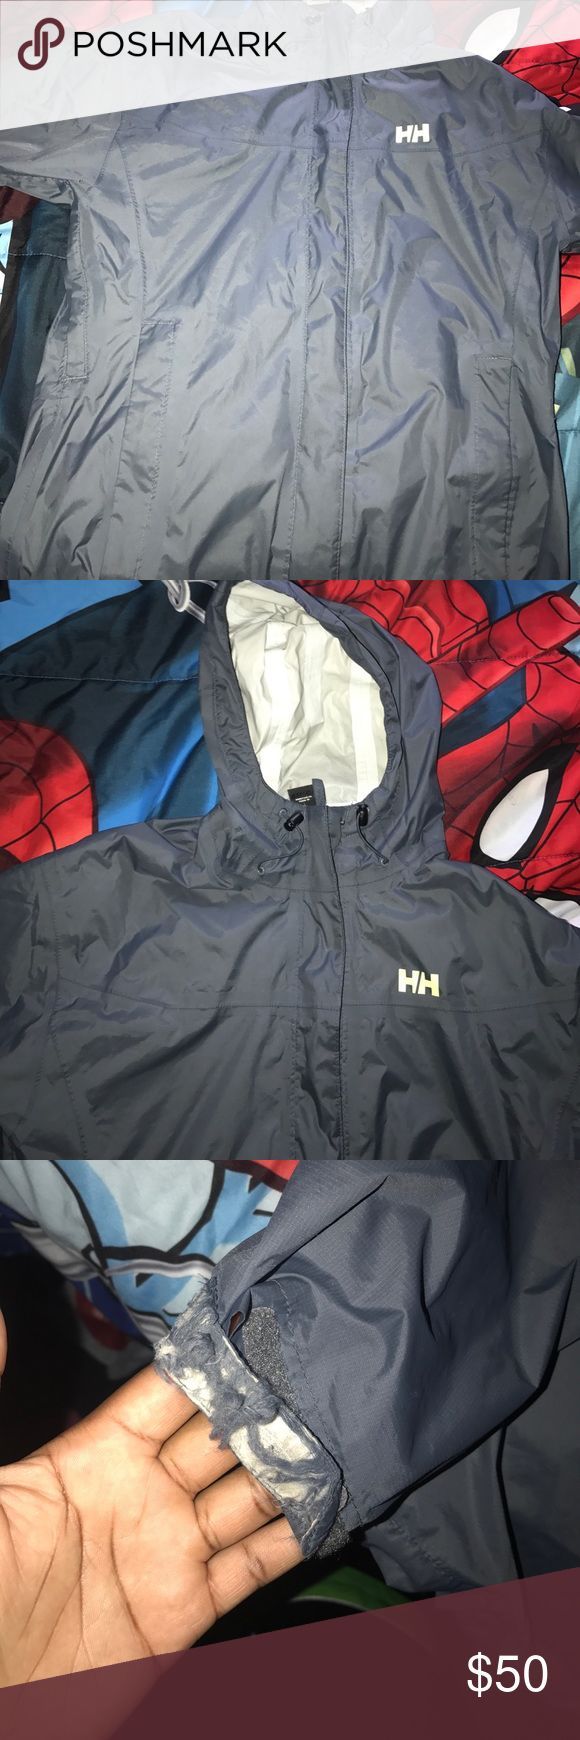 Helly Hansen Wind Breaker Used Helly Hansen. 6/10 condition only because the sleeve is a little torn. The rest of the jacket is 10/10. Helly Hansen Jackets & Coats